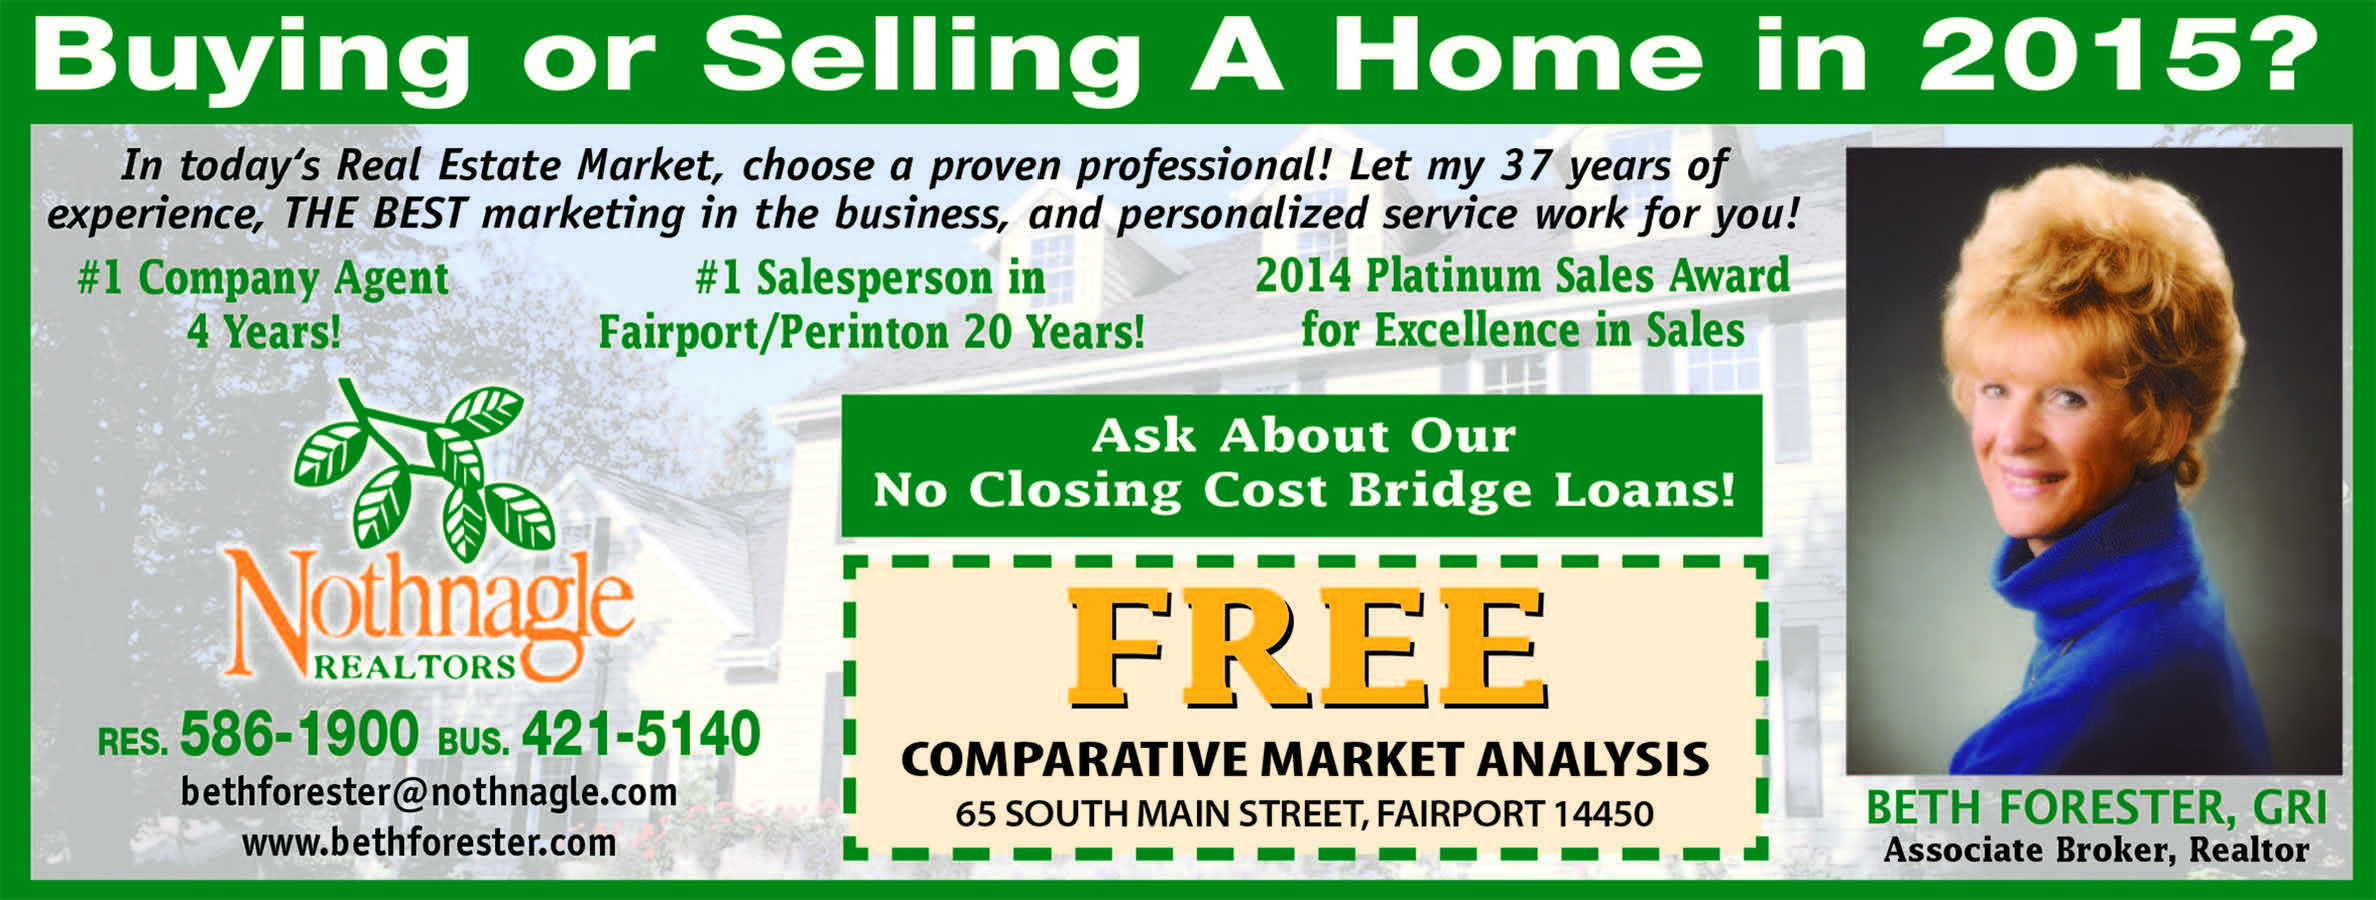 Save While Buying Or Selling Your Home By Choosing Beth Forester